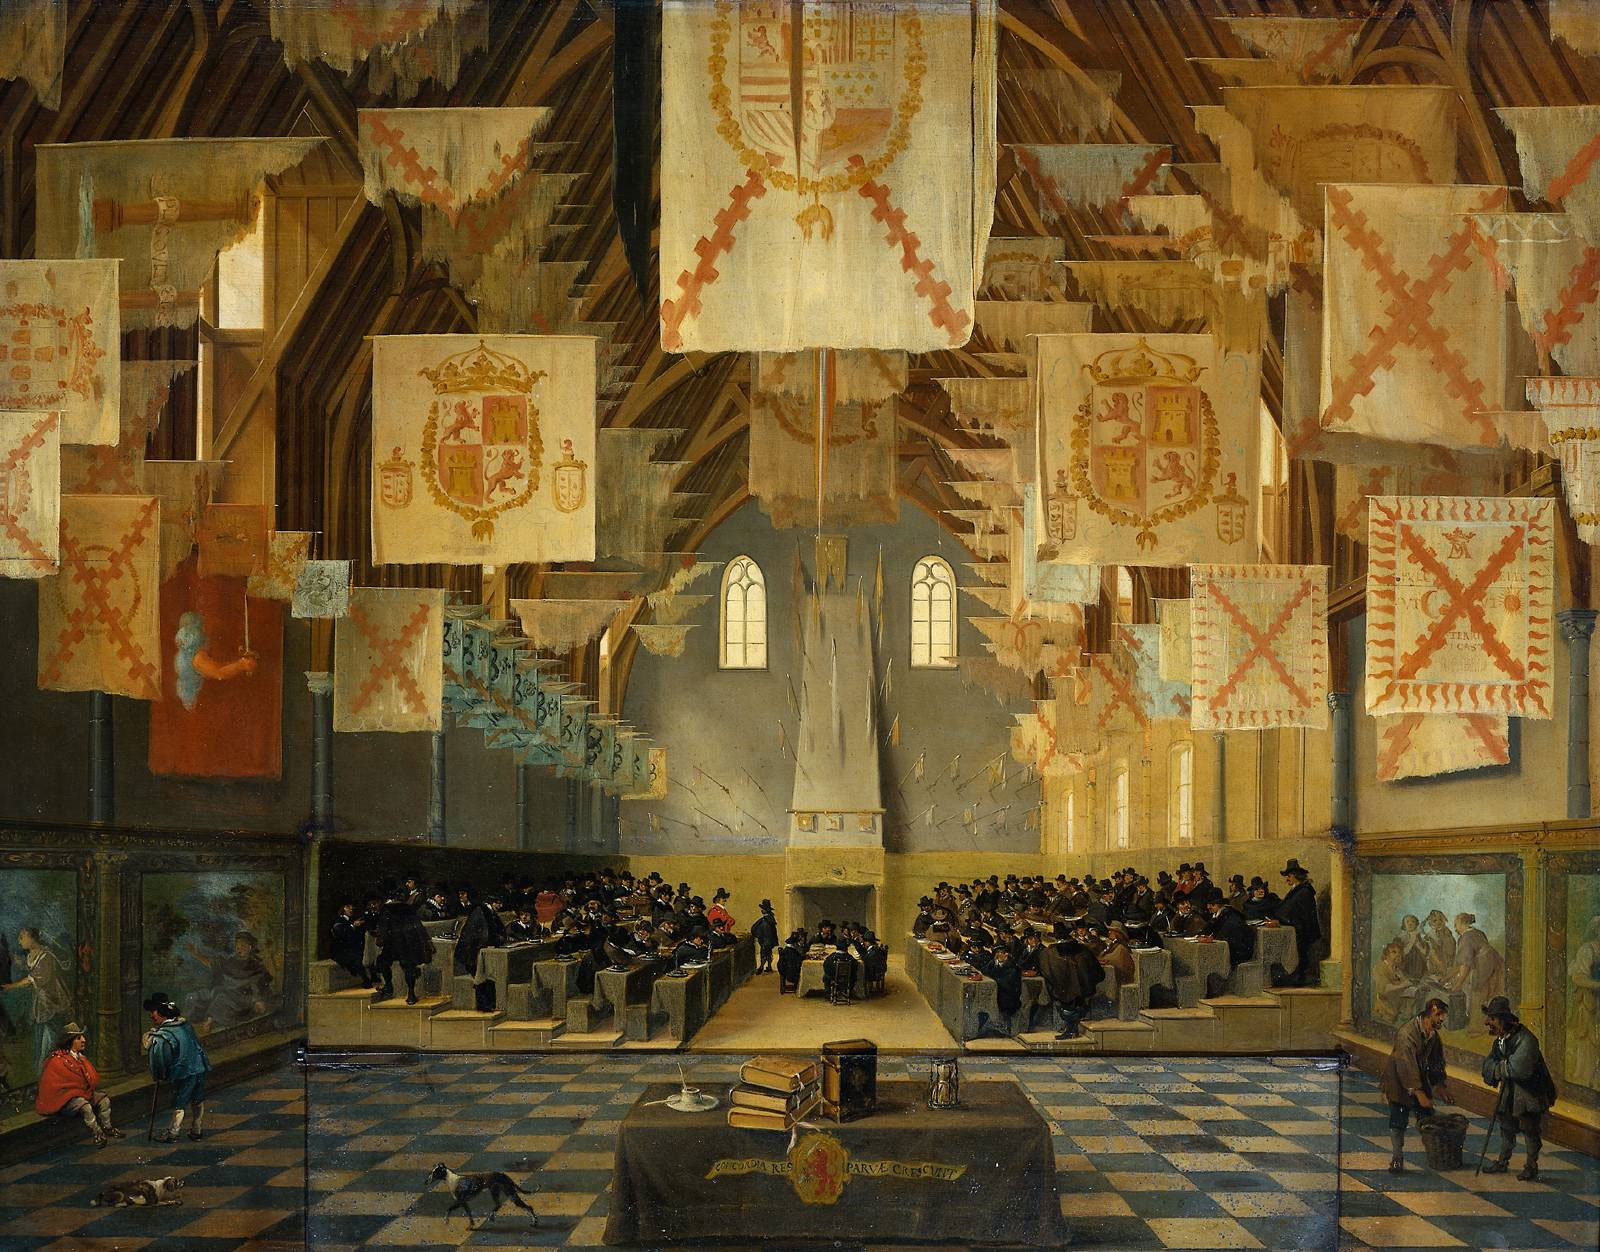 A flag of similar design hangs in the Binnenhof in The Hague circa 1651. The image of an arm holding a sword is common in European heraldry at least as early as the 16th century.